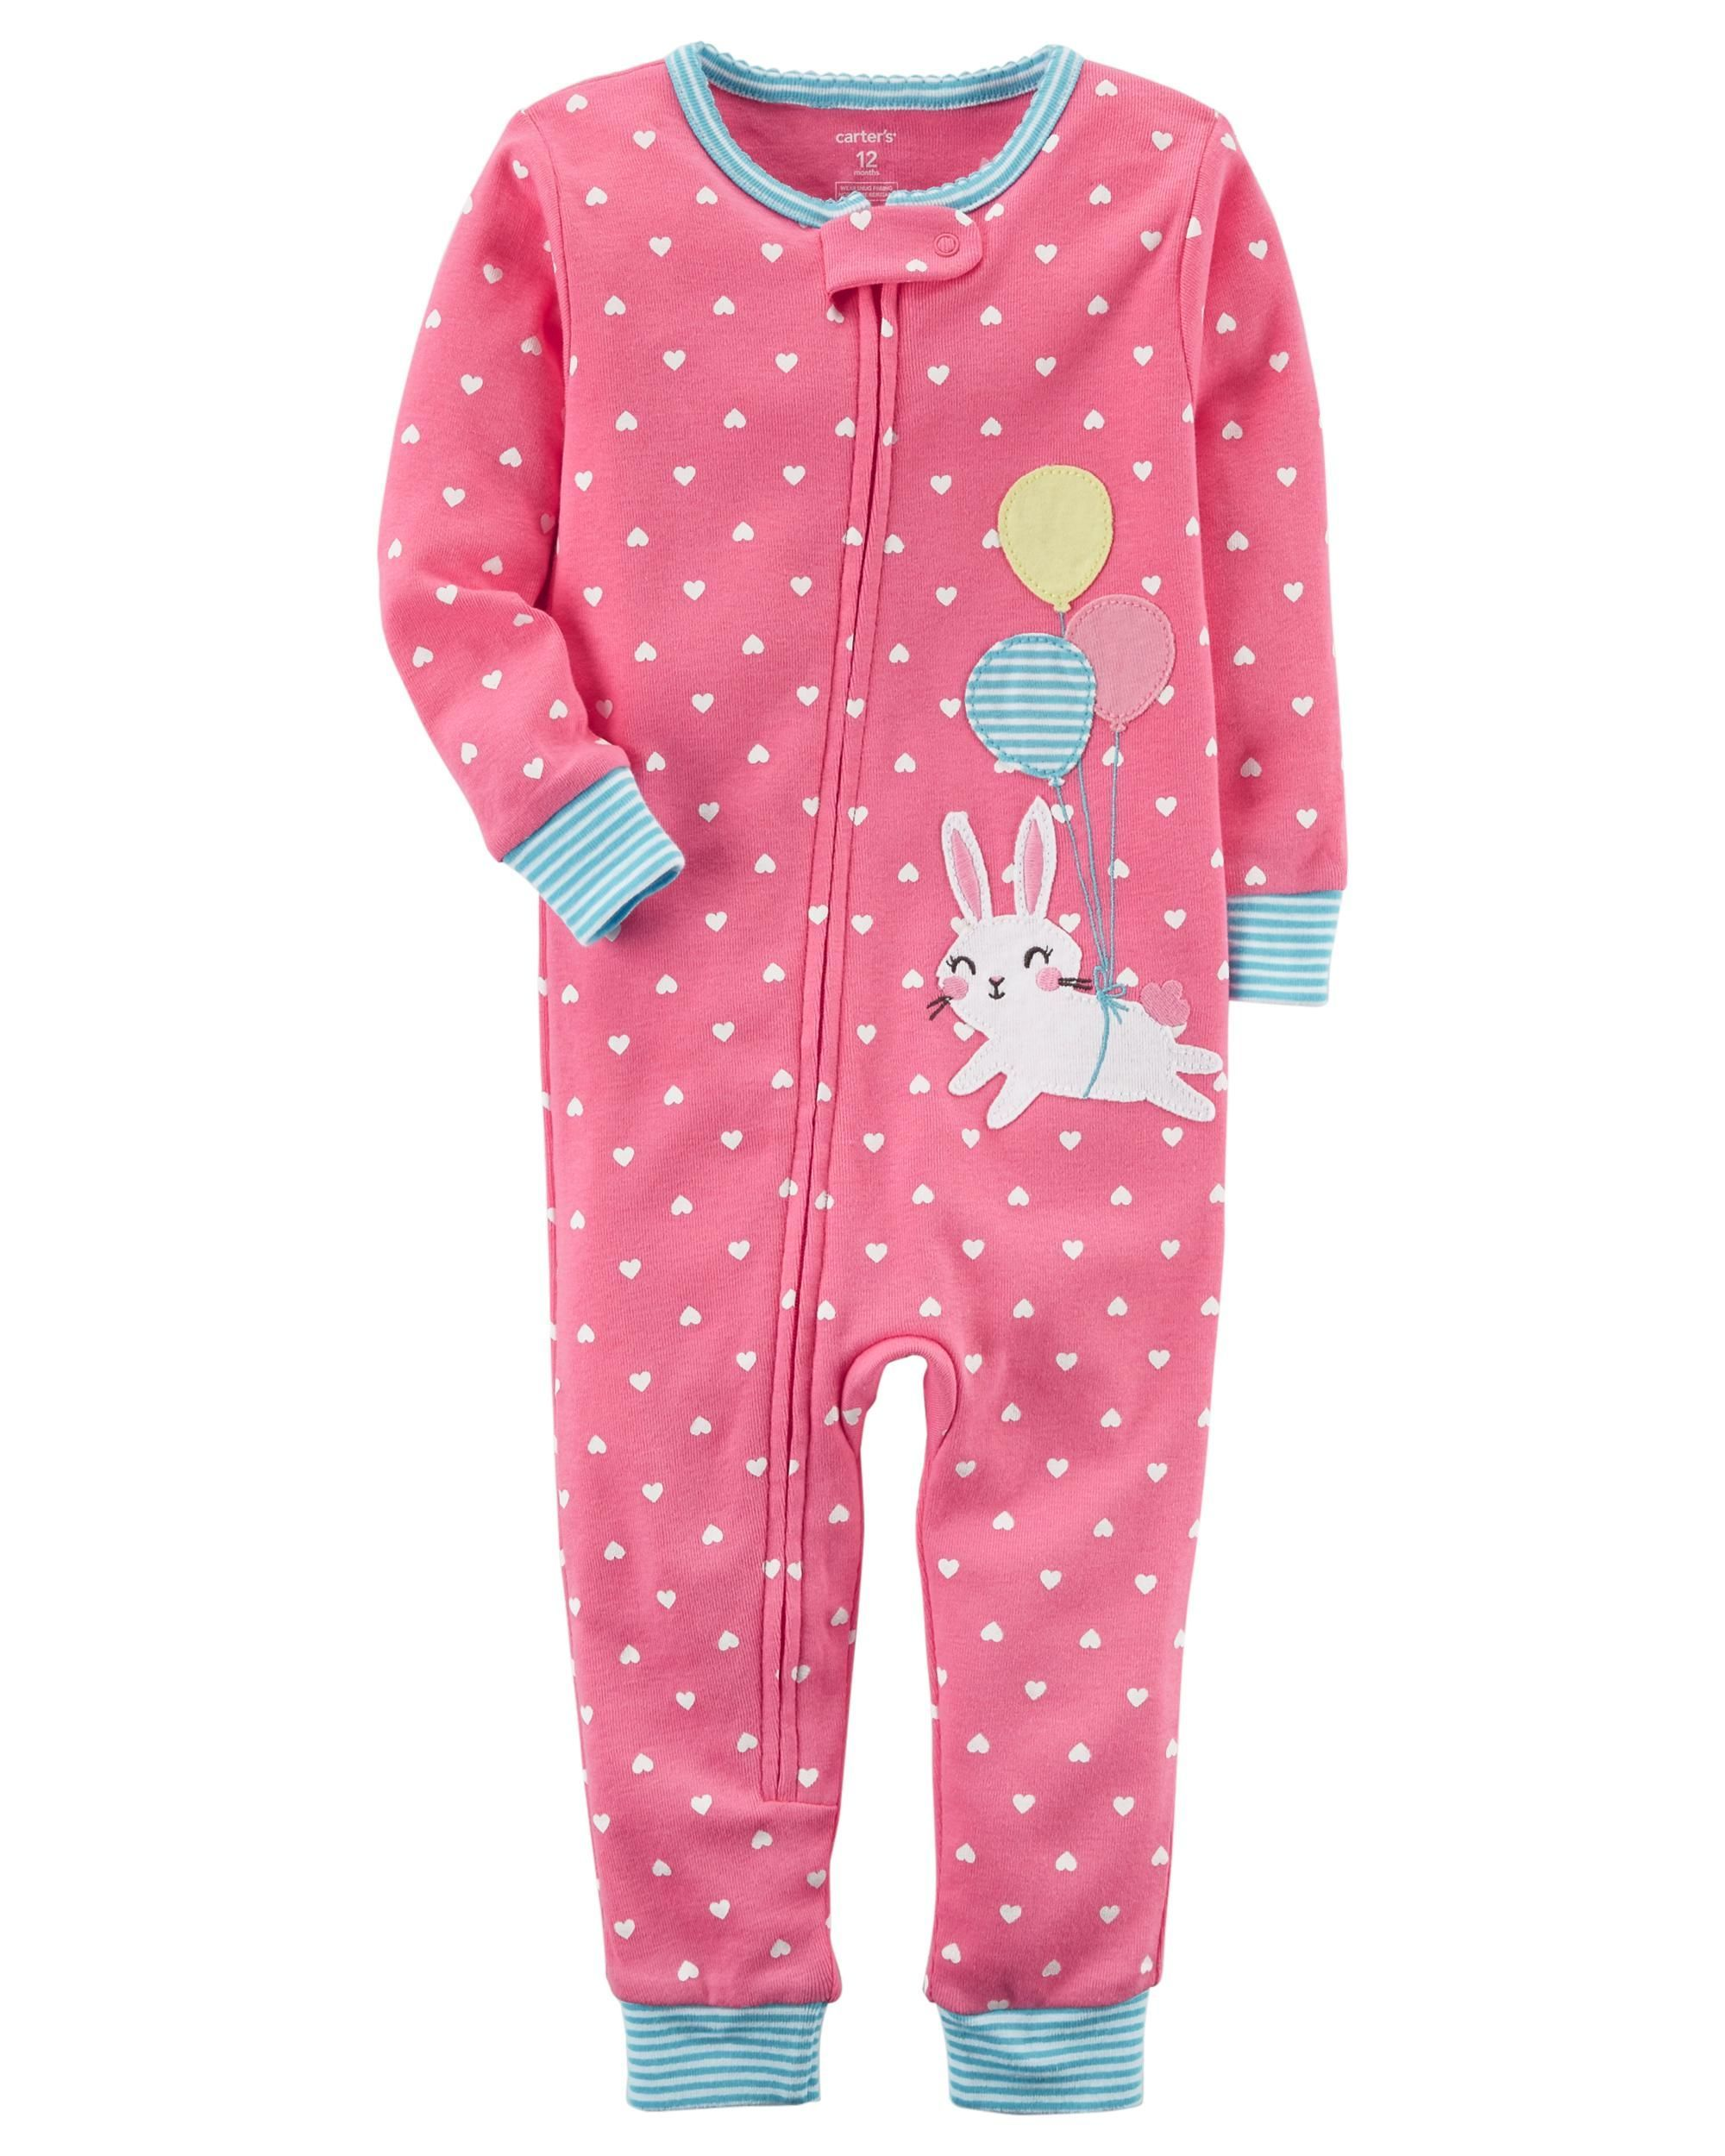 71cd8d6eb 1-Piece Snug Fit Cotton Footless PJs